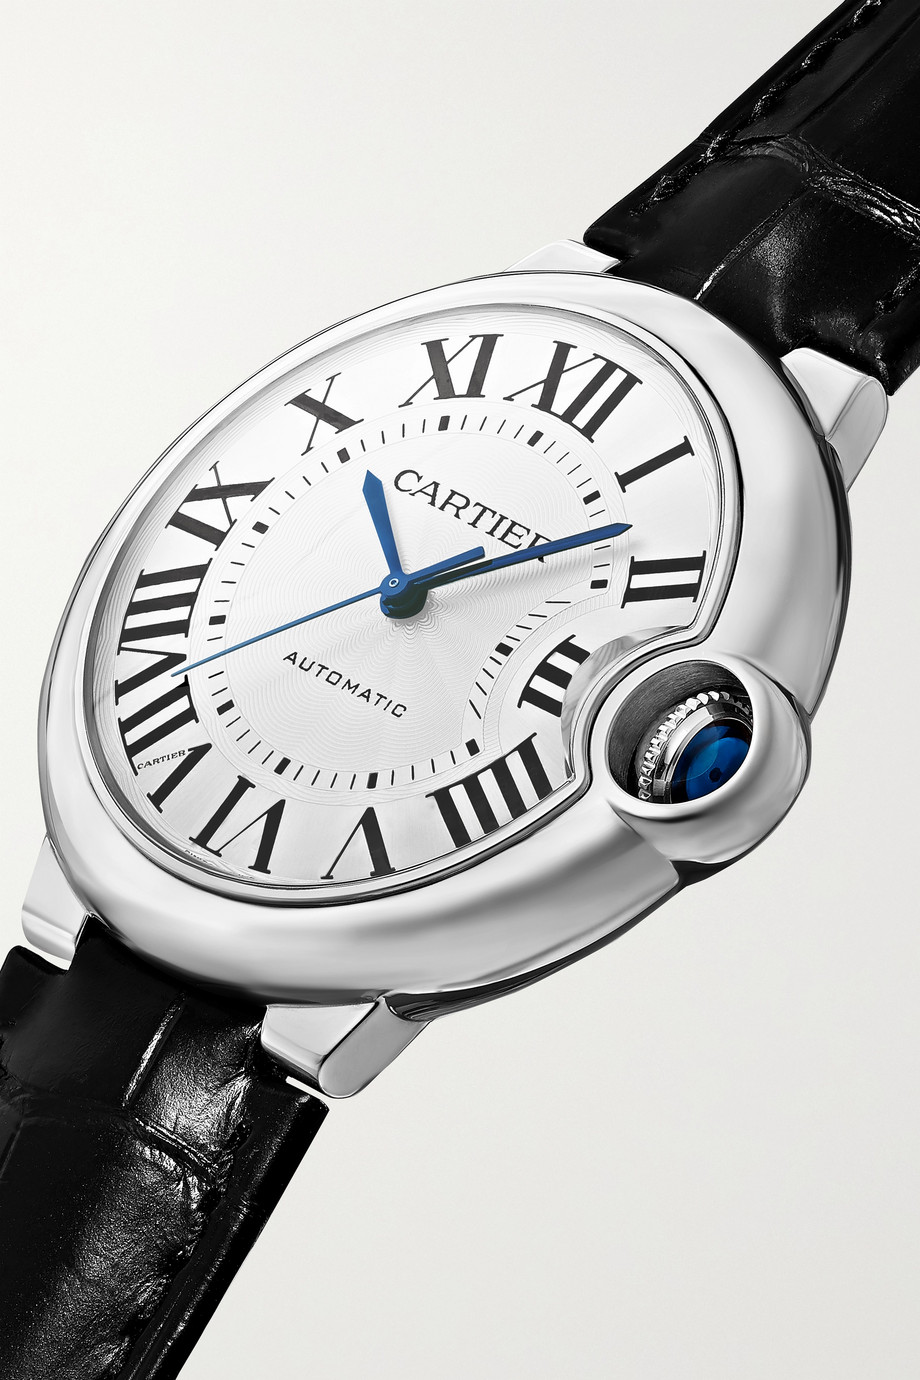 Cartier Ballon Bleu de Cartier 36mm stainless steel and alligator watch